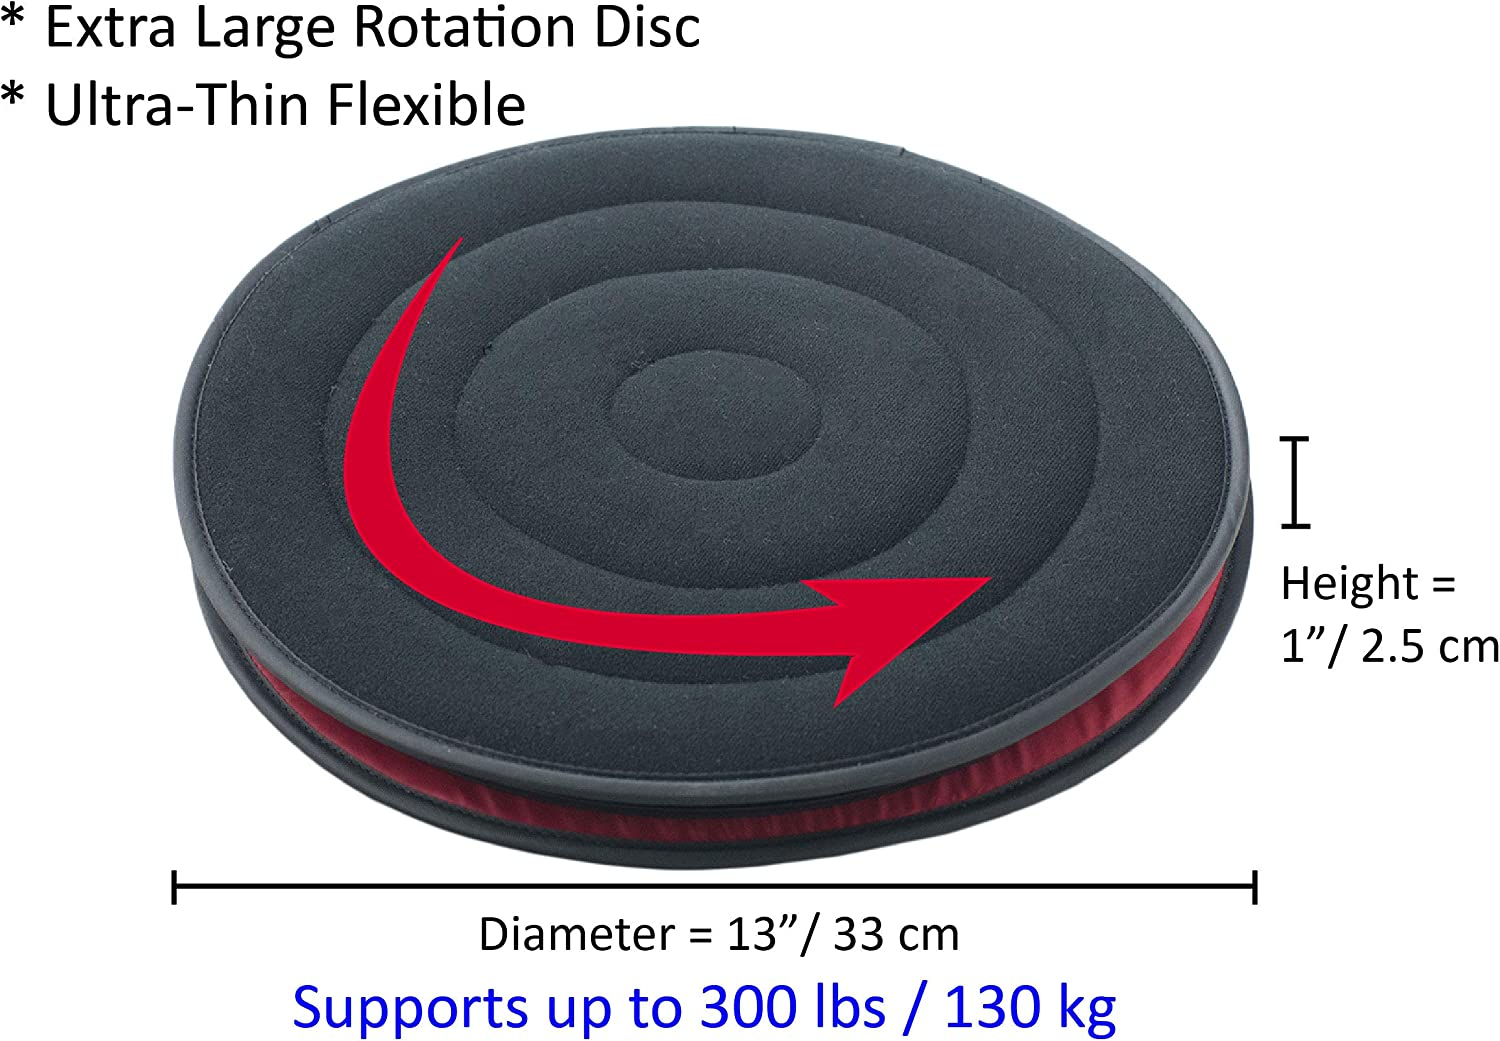 """ObboMed SS-2720 360/° Rotation Lightweight Flexible Ultra-Thin Swivel Seat Cushion with Synthetic Leather Base Easy Movement for Tailbone Pain Suffers 15/"""" x 1/"""" Special Fit for Car Seat 38 x 2.5 cm"""